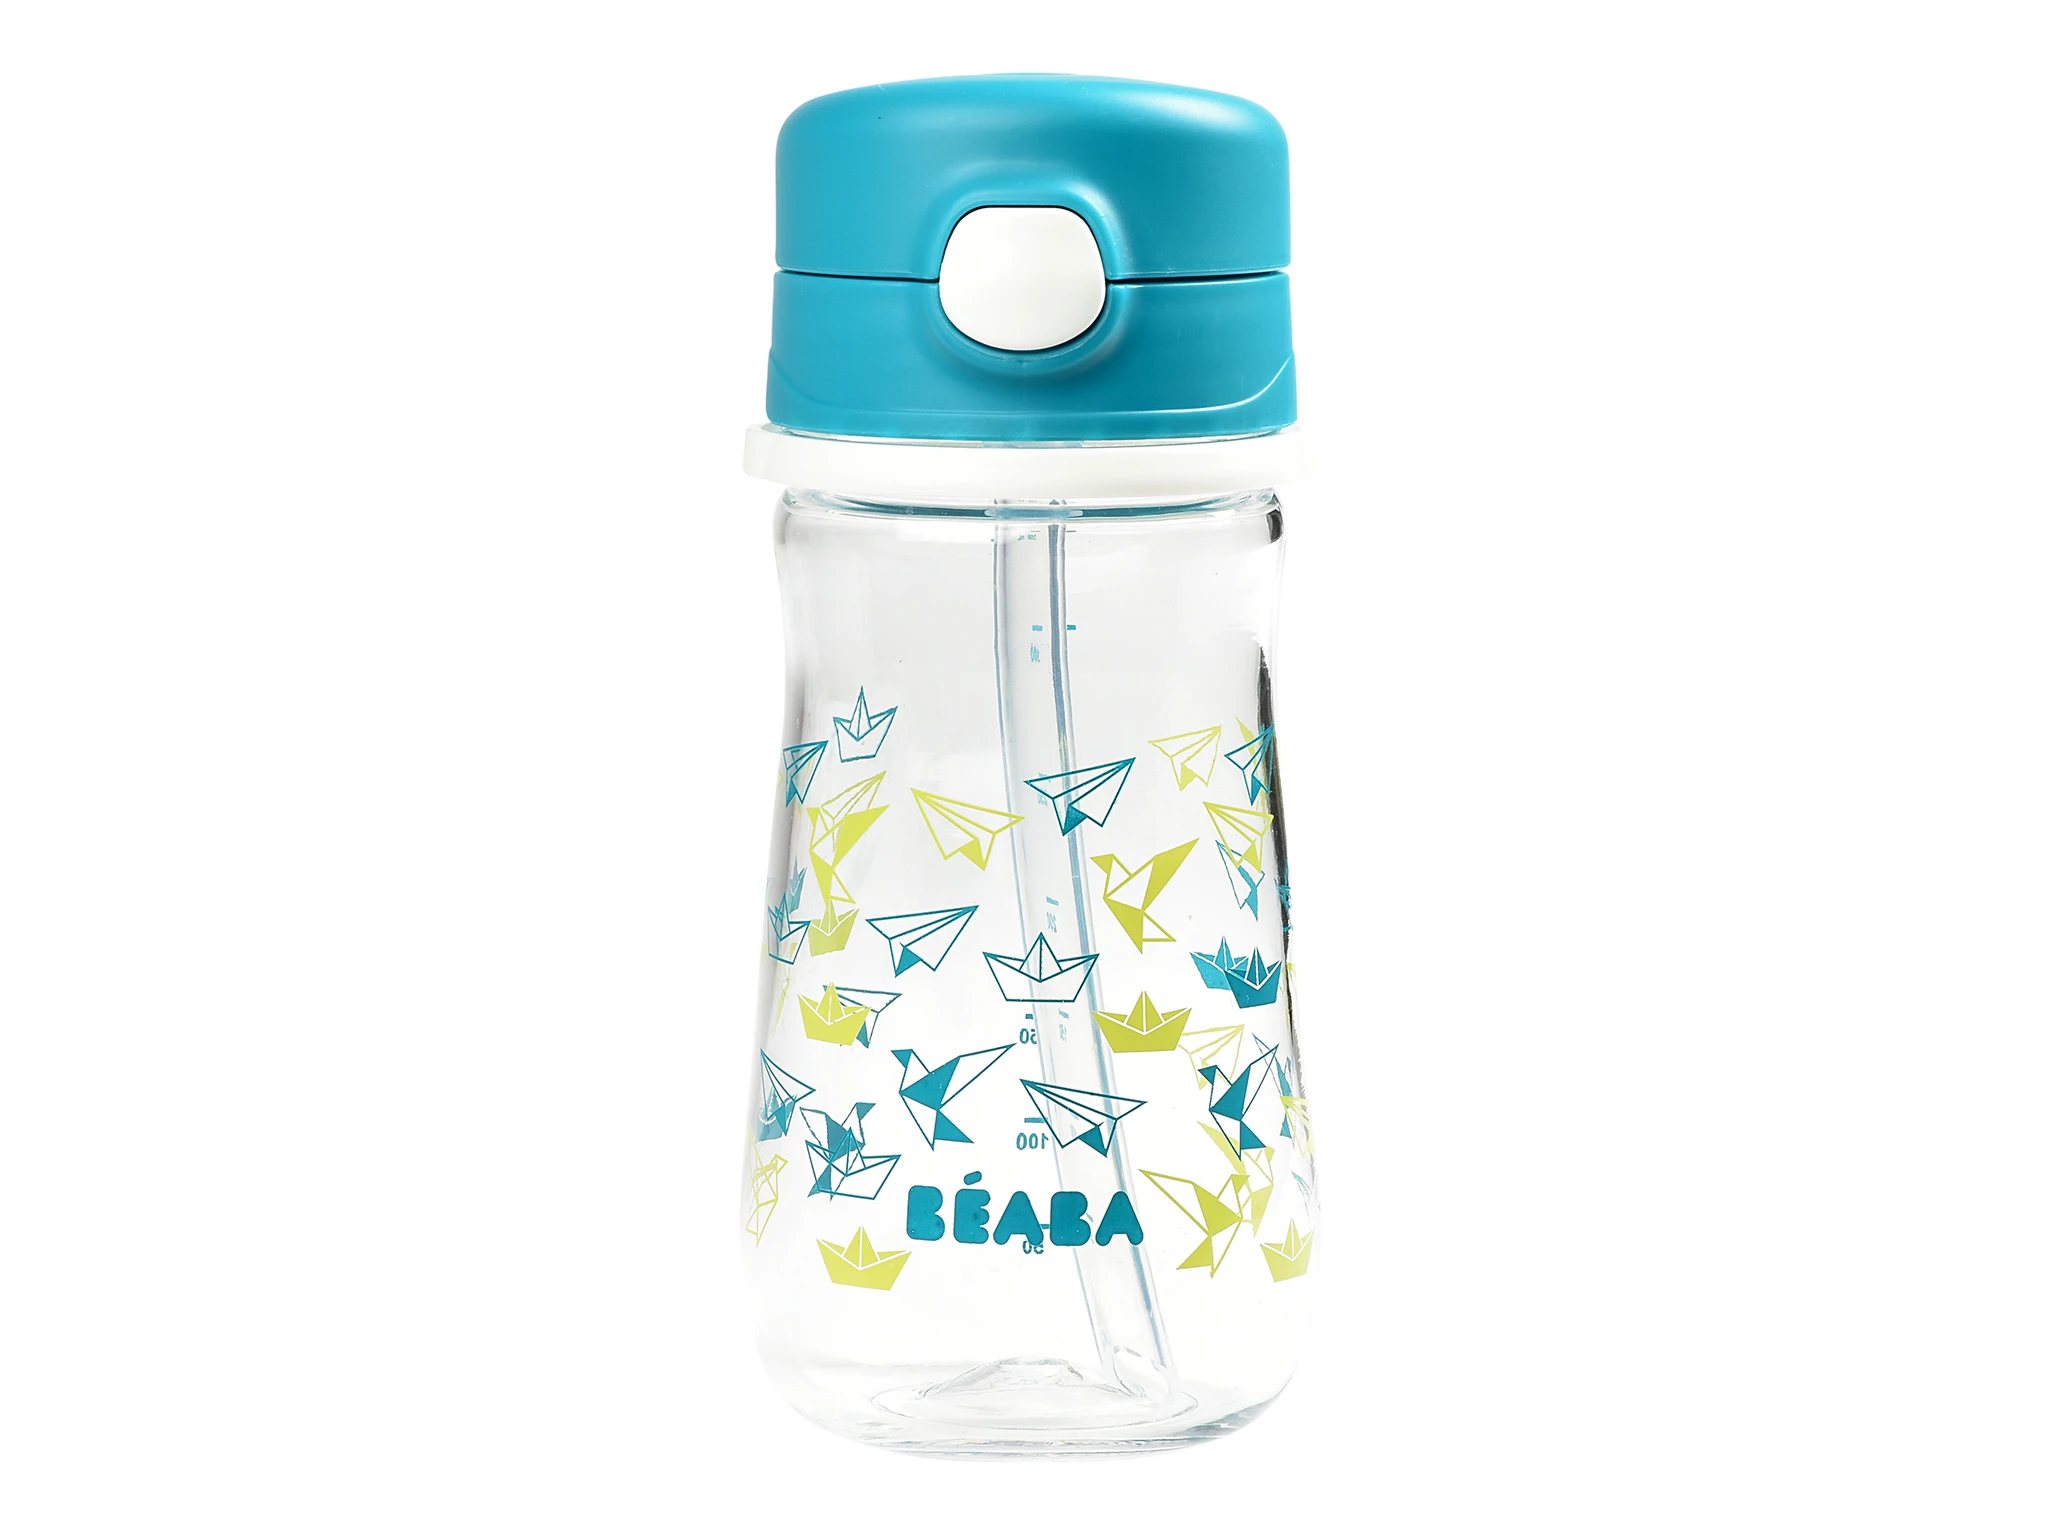 Beaba Straw Cup 350ml